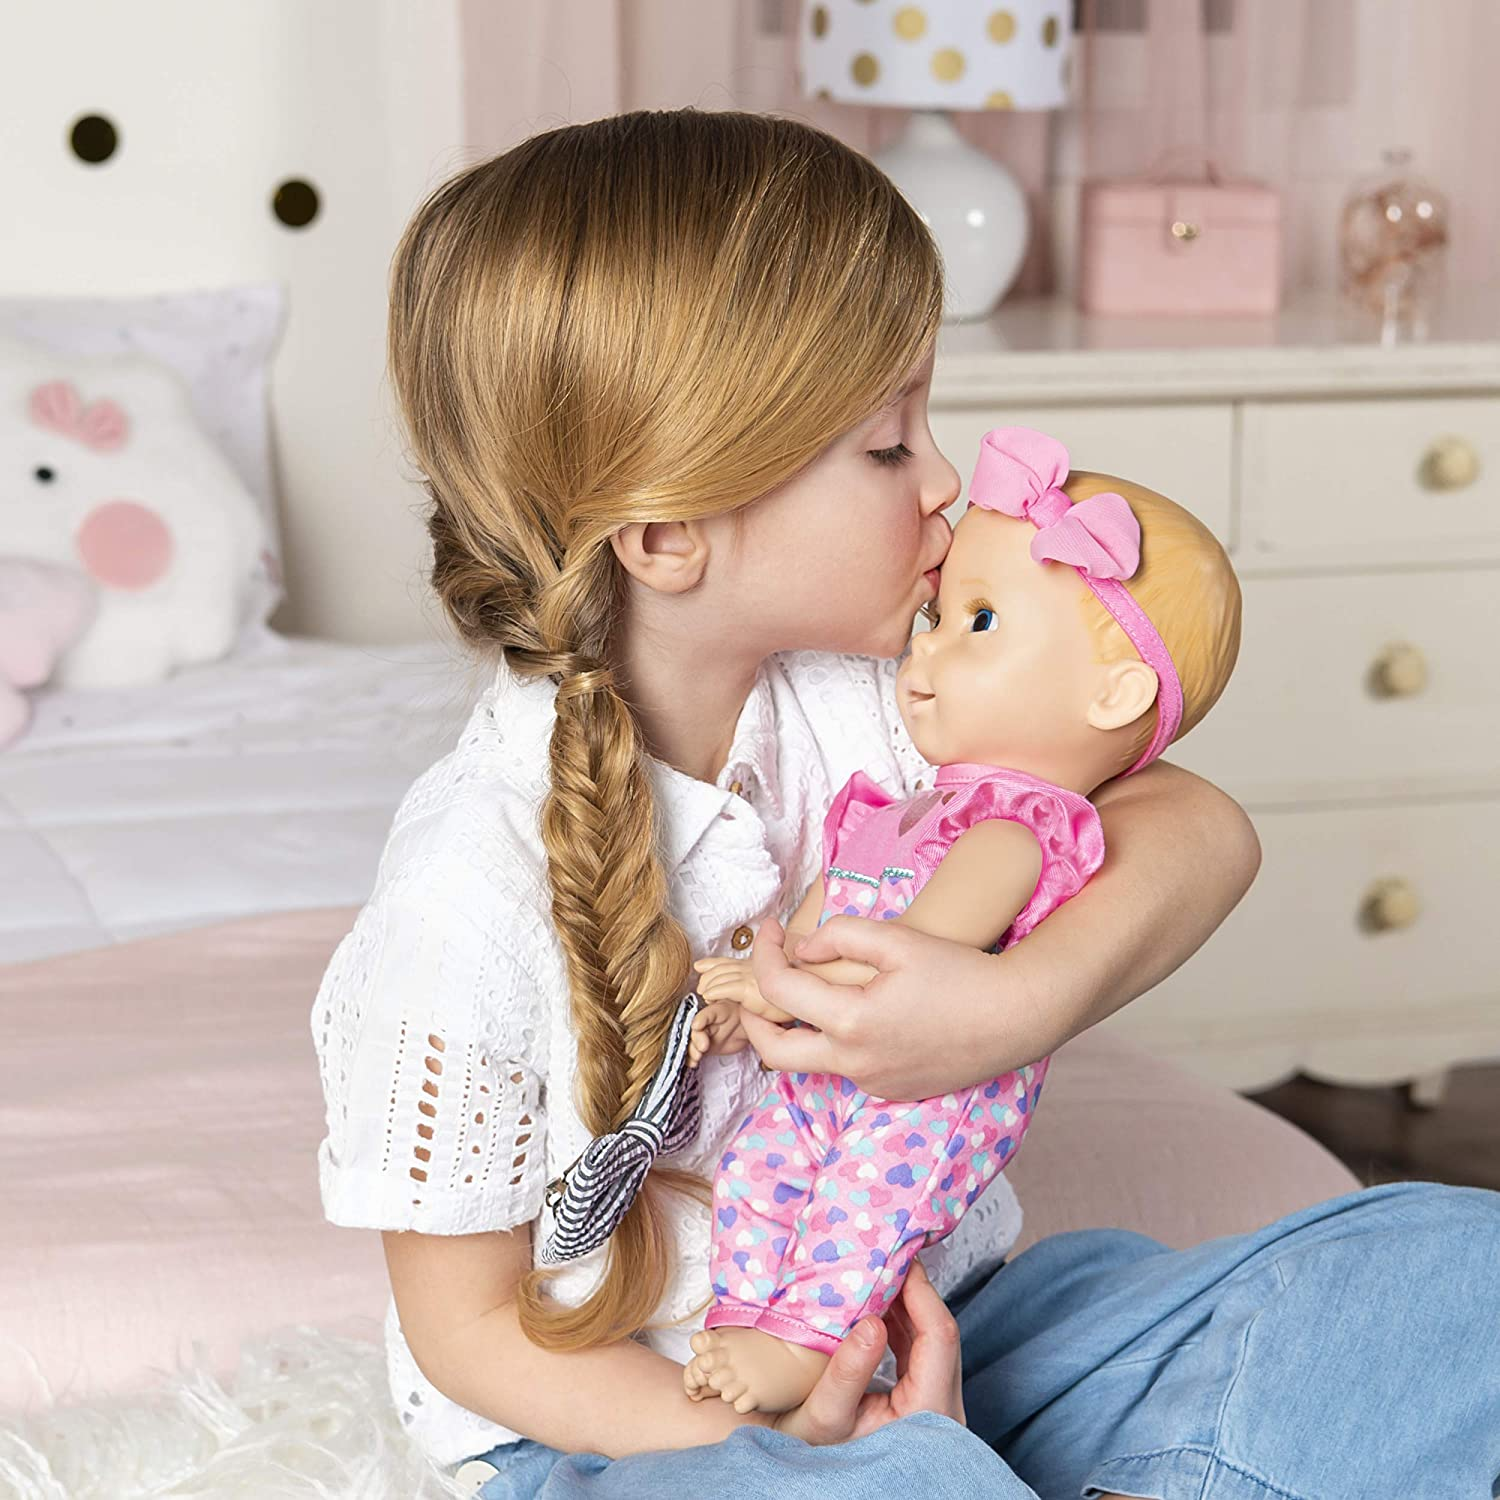 Luvabella Newborn Interactive Baby Doll With Real Expressions  Mo Blonde Hair